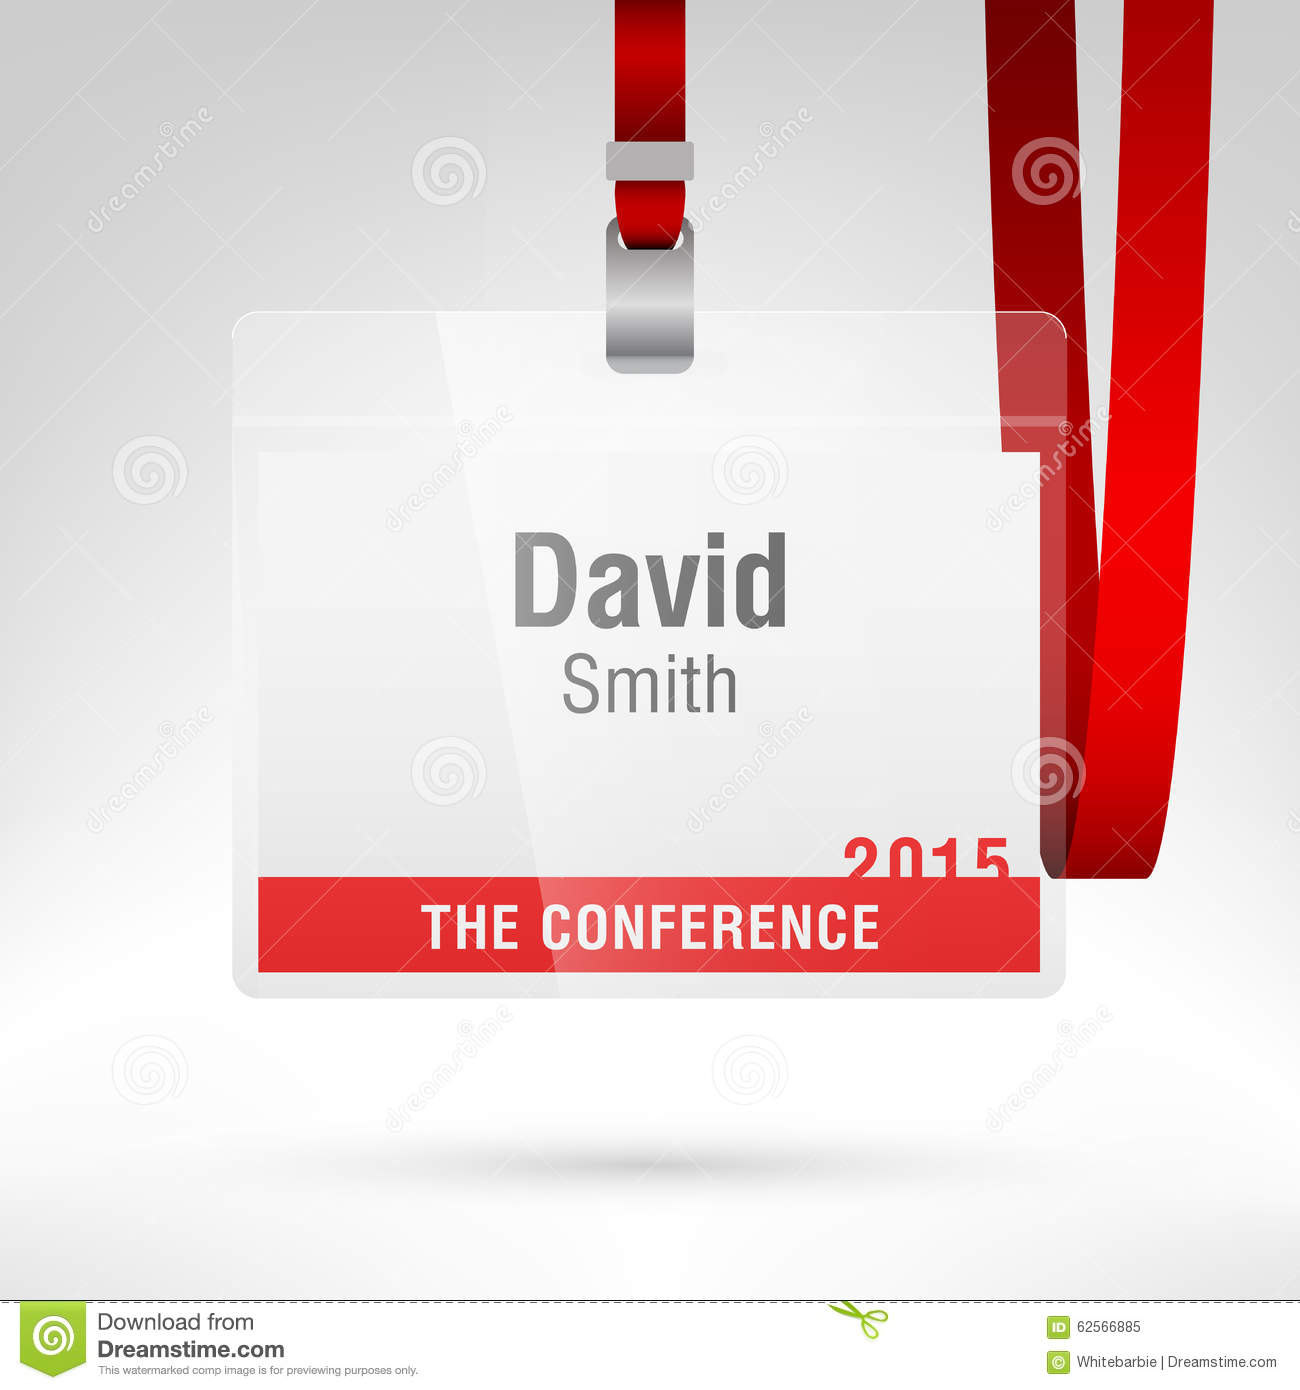 Conference Badge Stock Vector Illustration Of Template - Conference name badges template